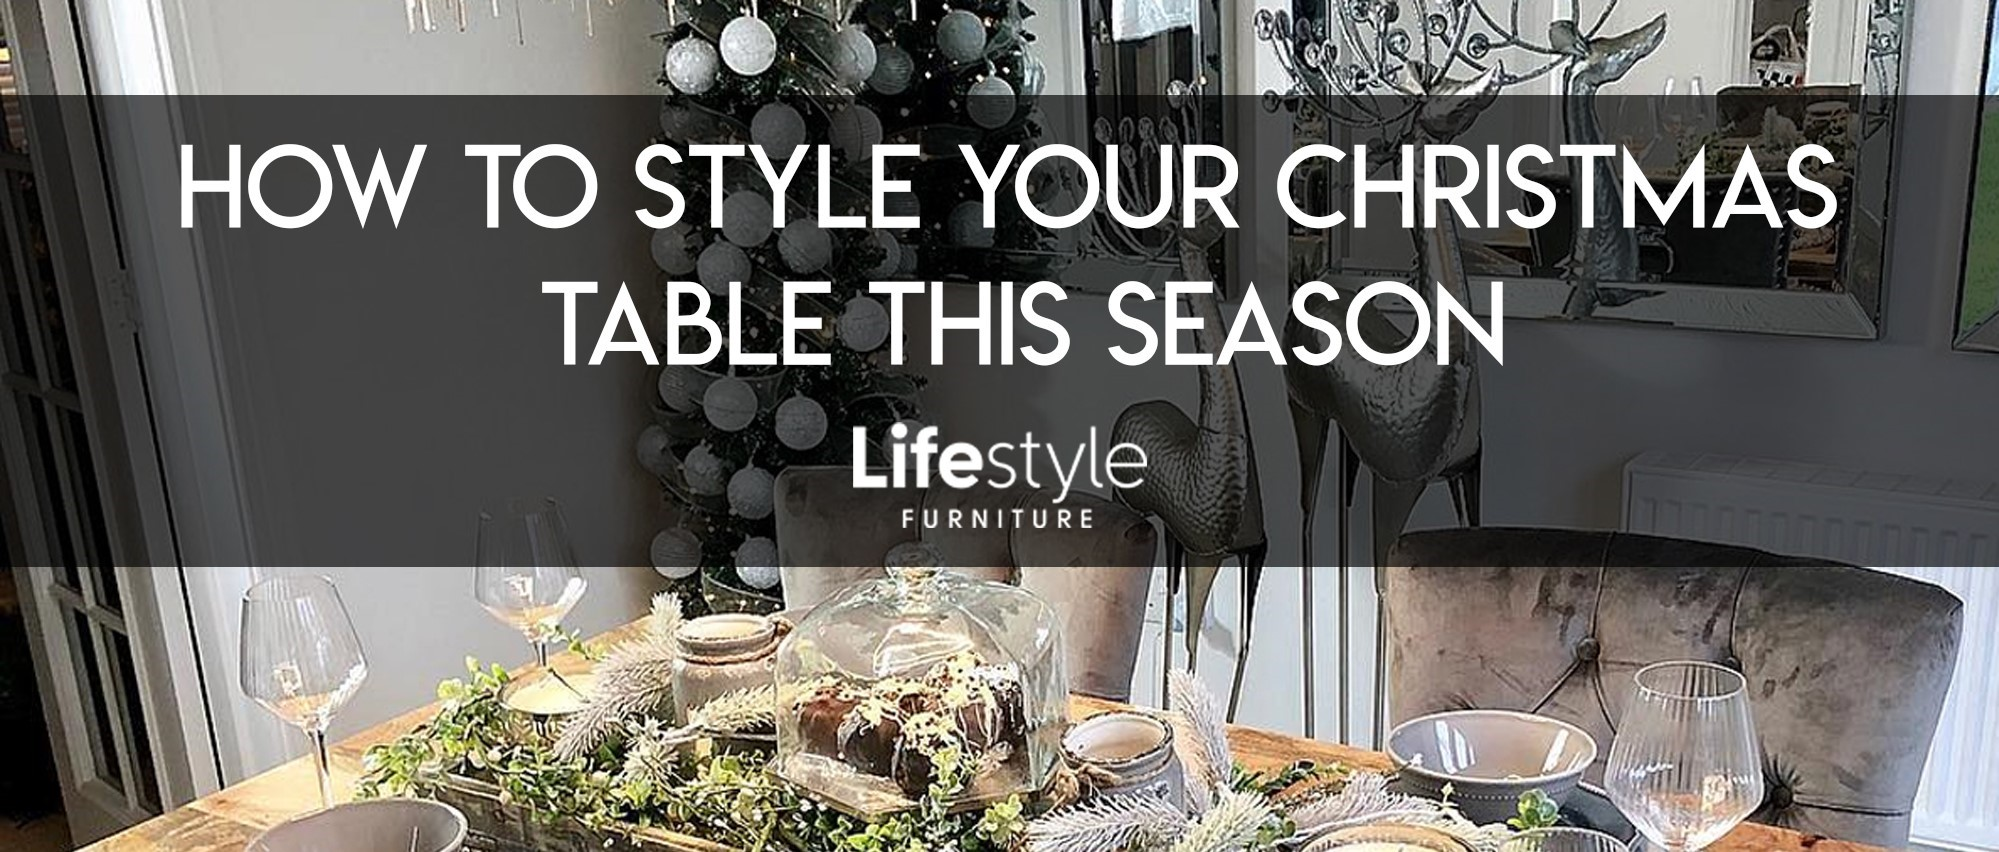 How to dress your dining table this Christmas